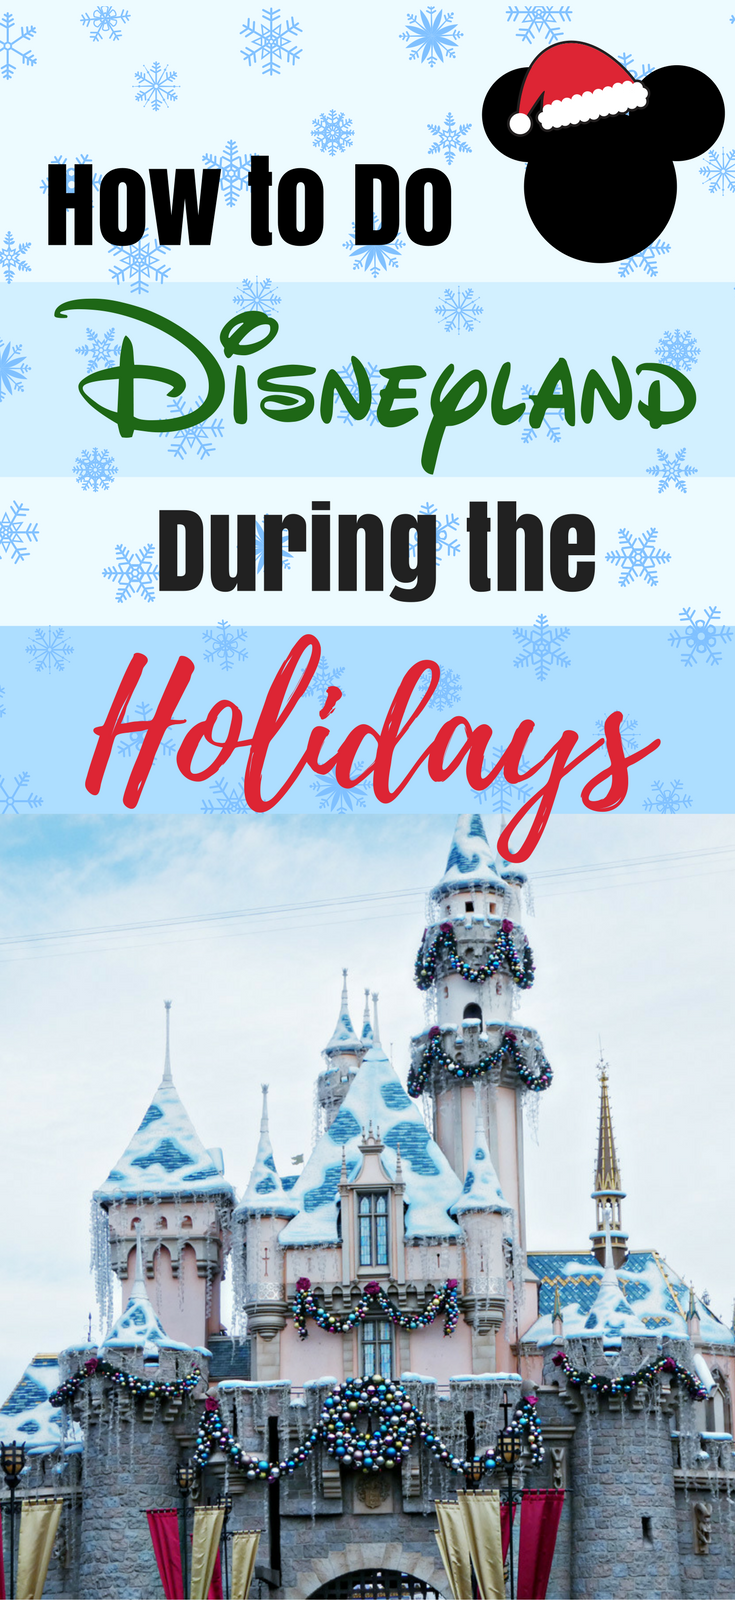 Worried about holiday crowds at Disneyland? These 11 tips will help you navigate the busy Parks in California during magical holiday festivities! #Disneyland #DisneylandResort